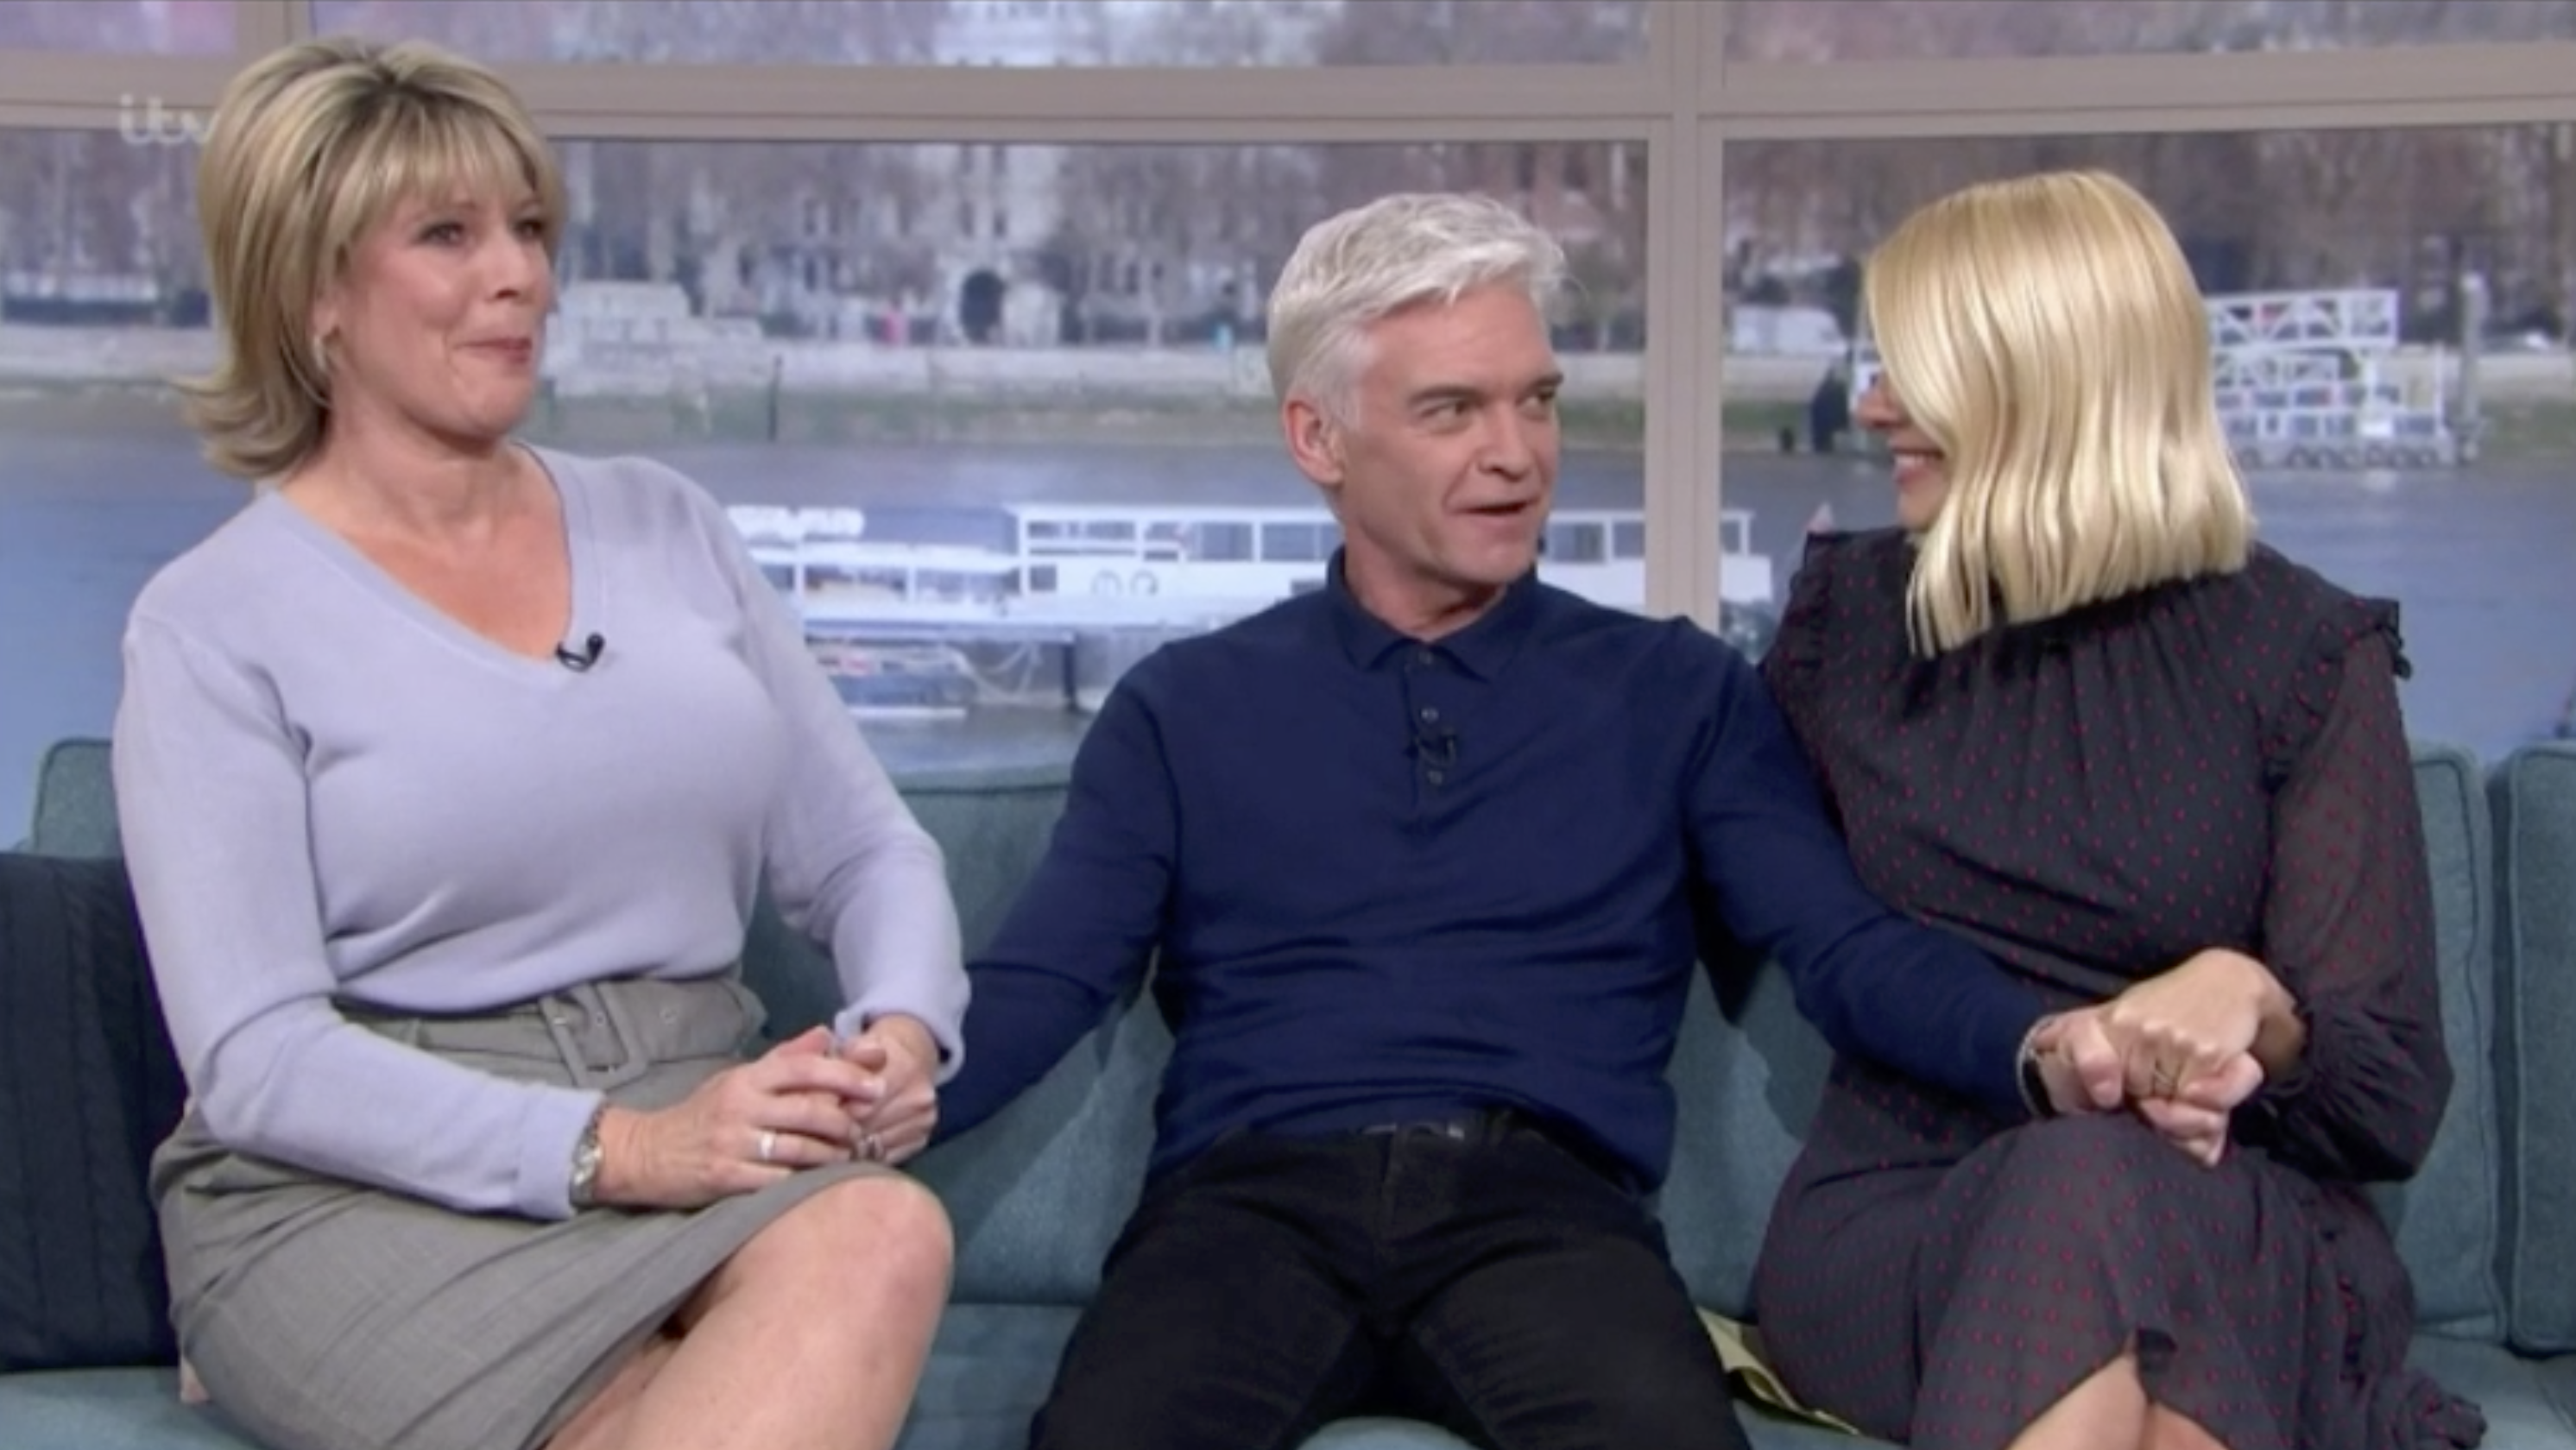 Ruth Langsford 'ends feud' with Phillip Schofield as she hugs him live on air